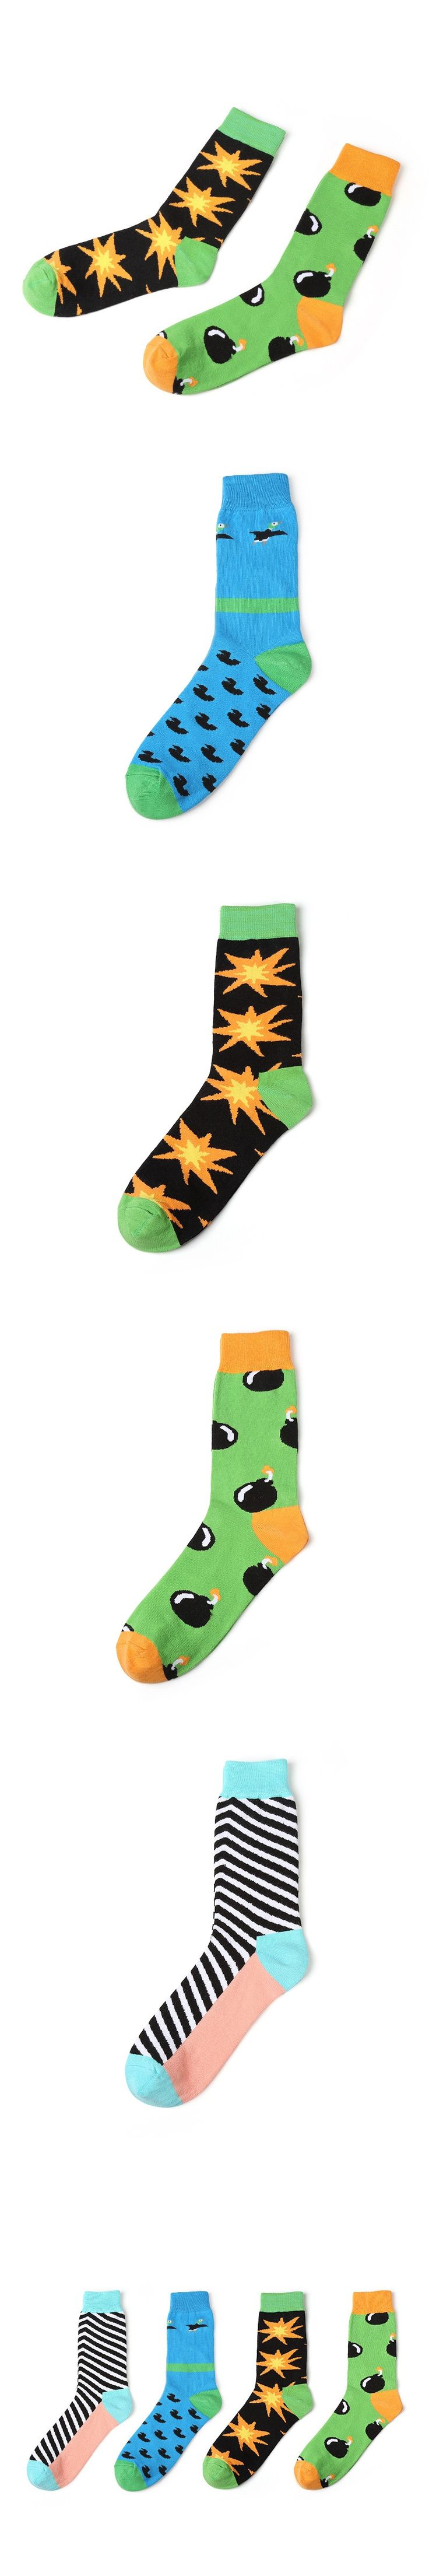 Hot Sale Stockings For Men Chaussettes Homme Coton Creative Colorful Cotton Long Socks For Men Casual Men's Stockings